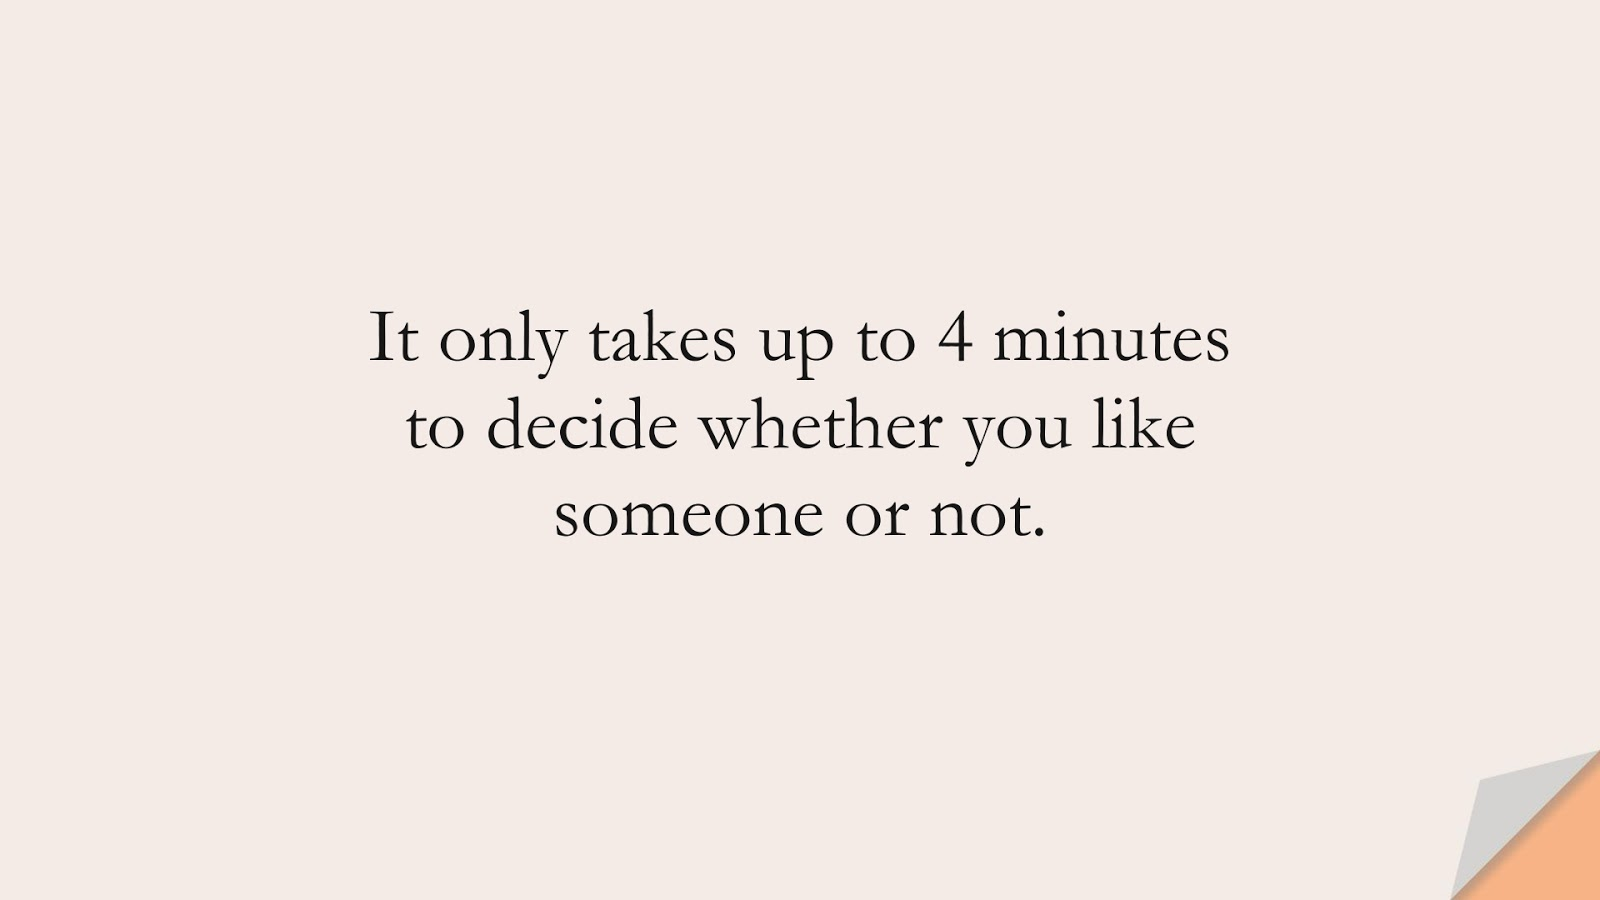 It only takes up to 4 minutes to decide whether you like someone or not.FALSE